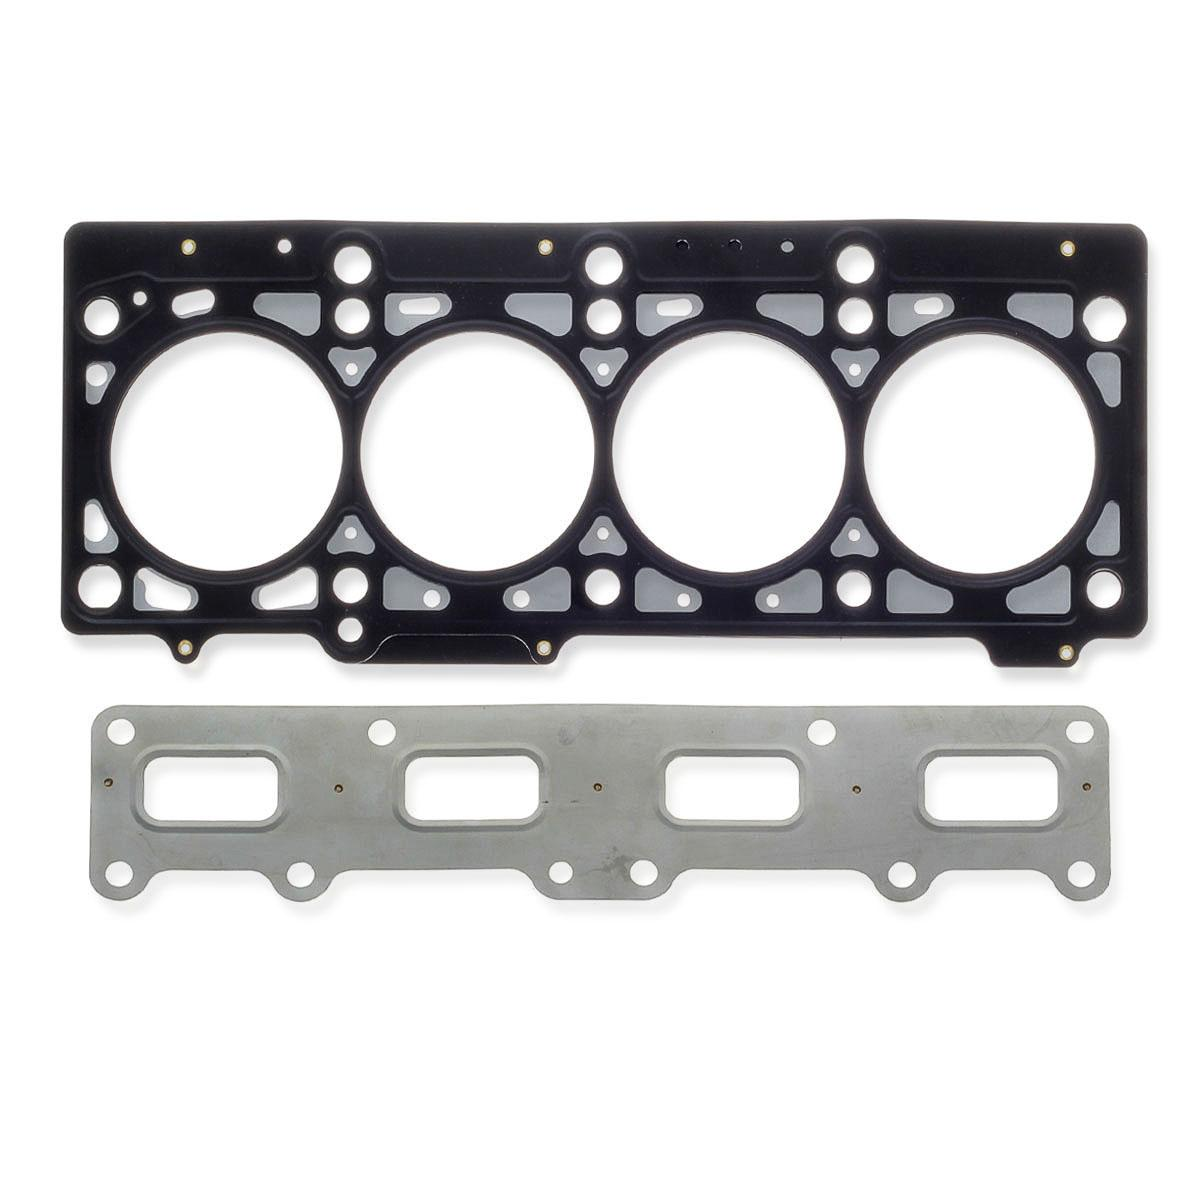 For Chrysler Cruiser Jeep Liberty 2.4L Cylinder Head